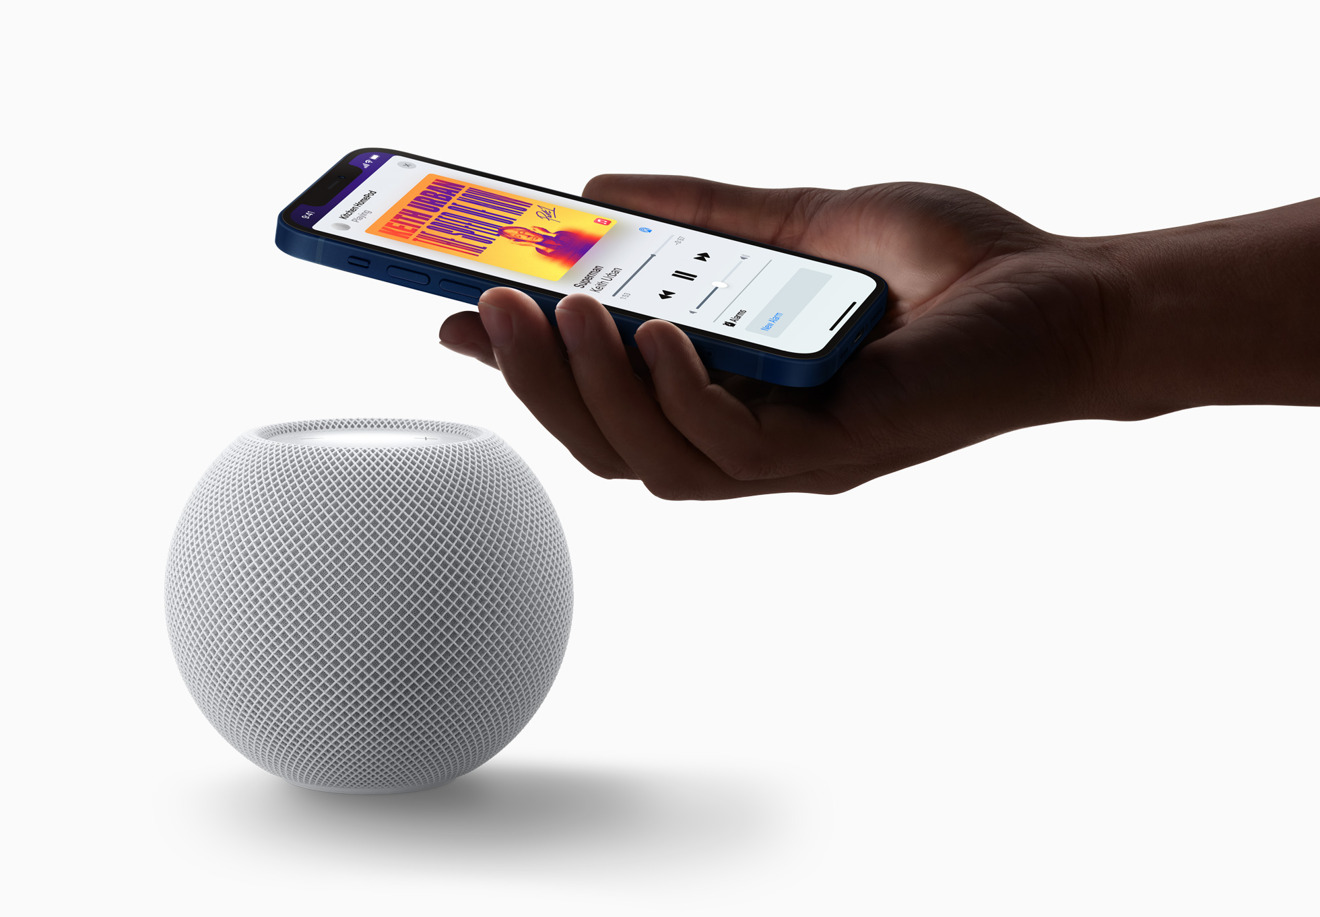 You can still deliver music by moving an iPhone near the HomePod mini.